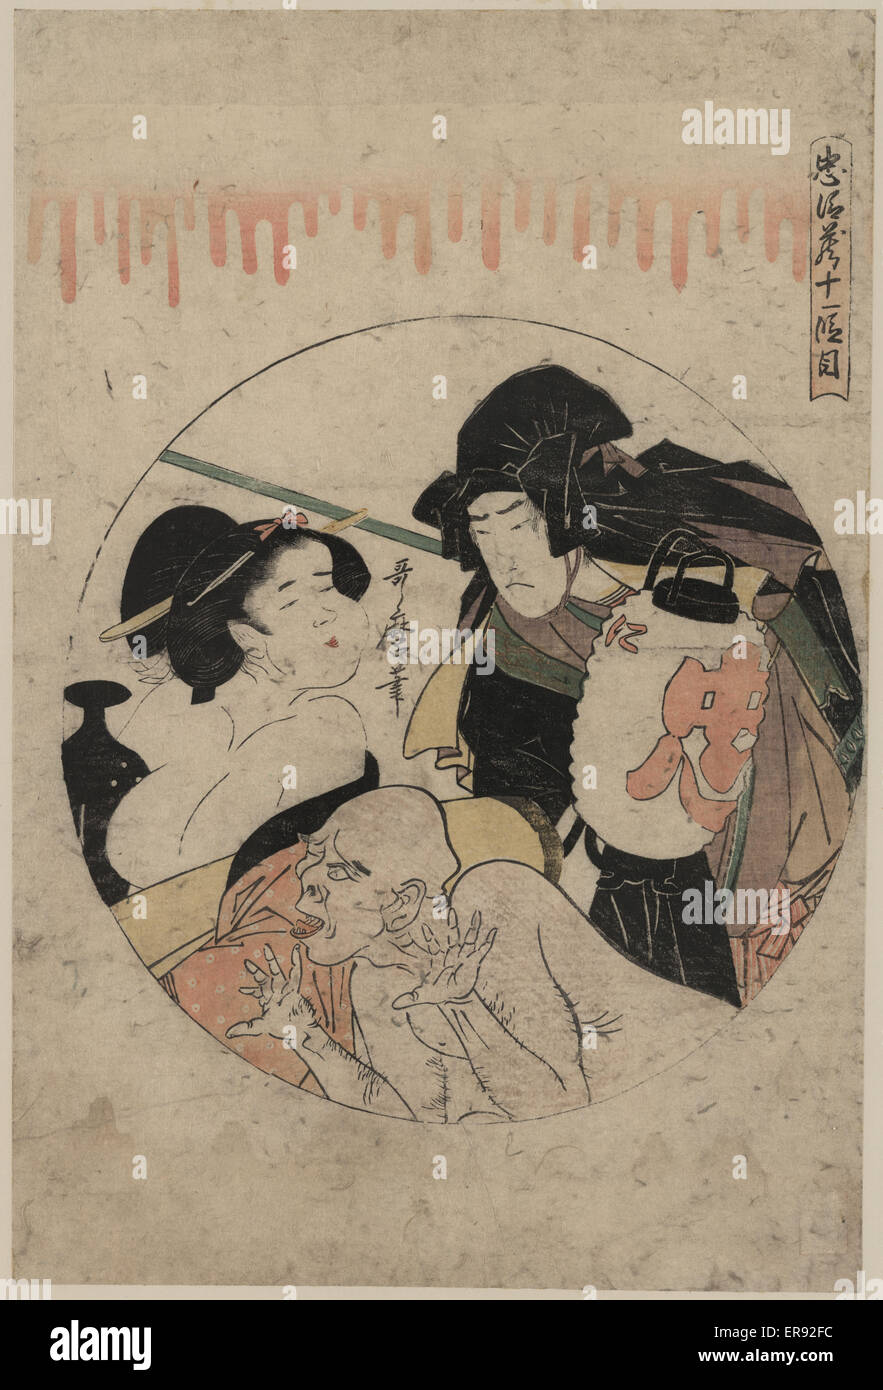 Act eleven of the Chushingura. Print shows a mentally disabled old man, a samurai carrying a lantern (one of the - Stock Image